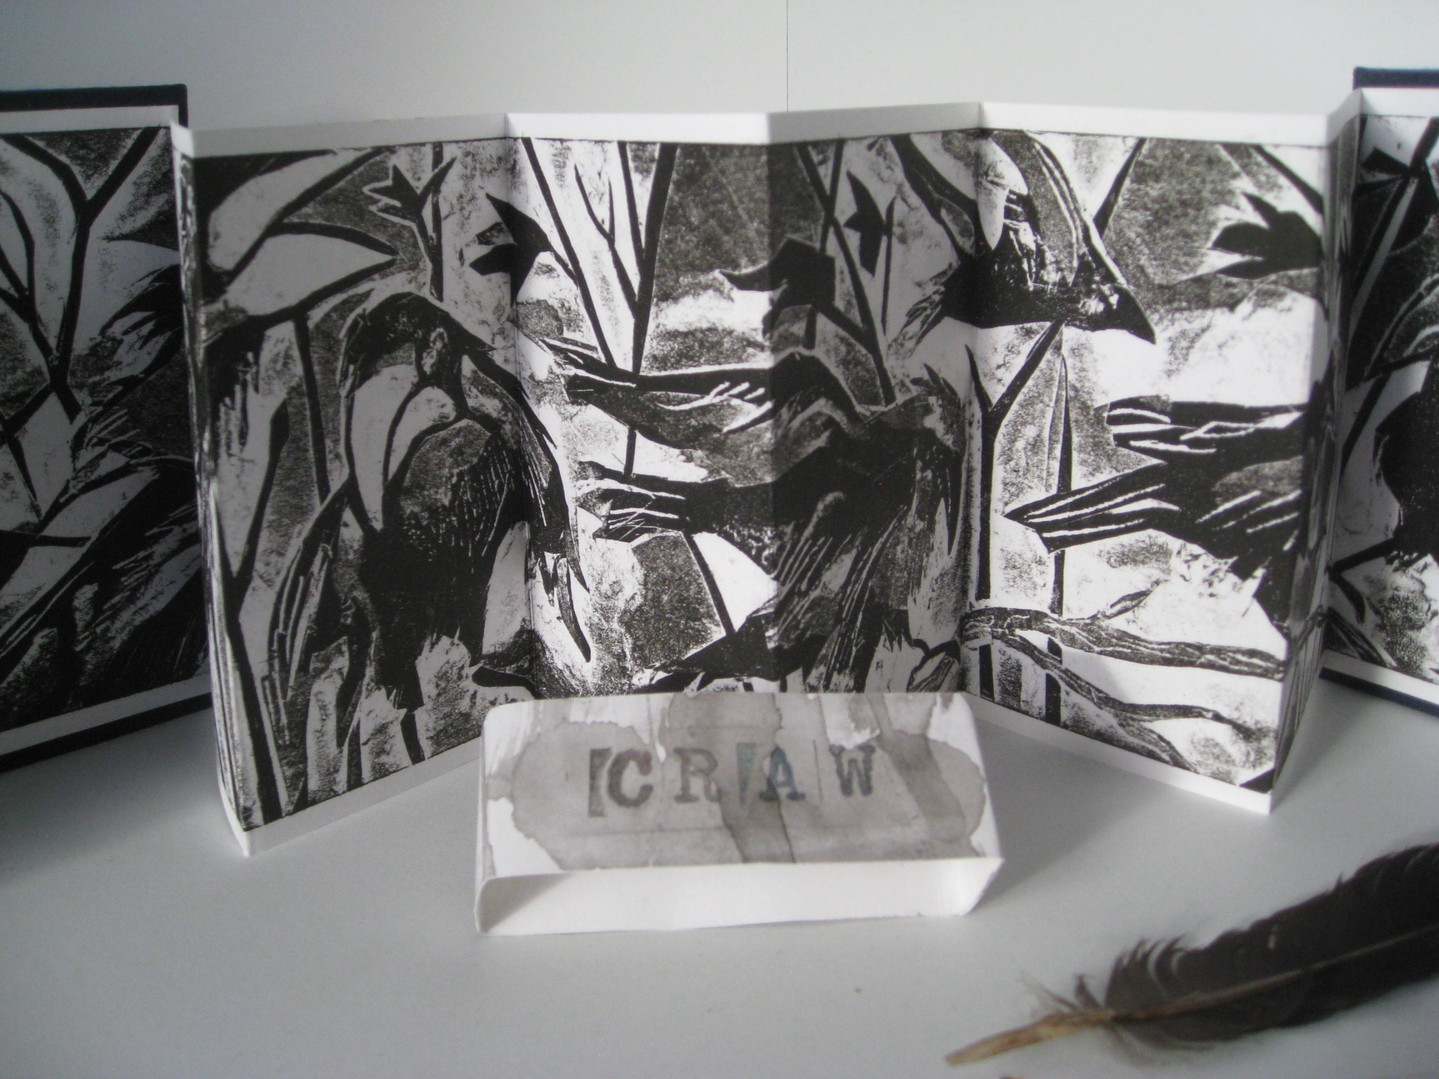 Student work - artists bookmaking